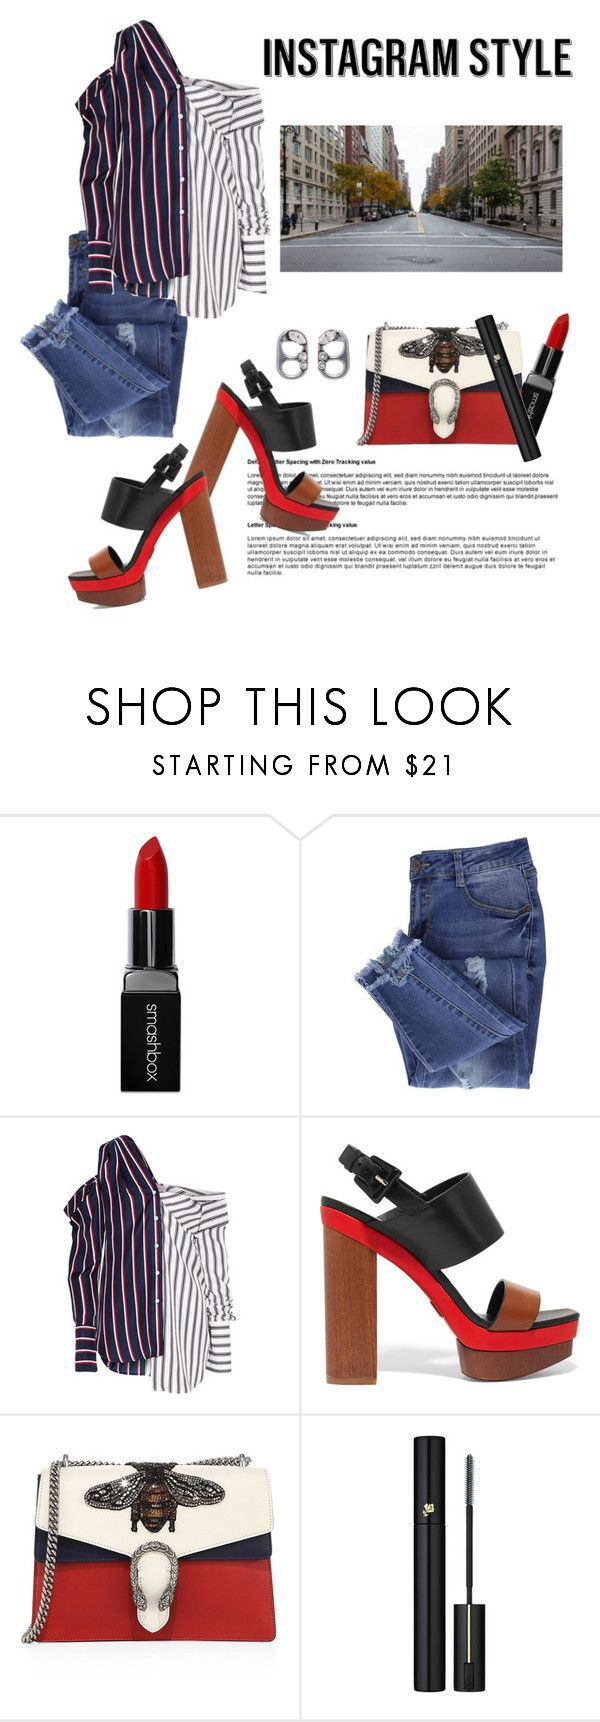 """STREET IG"" by gizaboudib on Polyvore featuring moda, Smashbox, Essie, Monse, Michael Kors, Gucci, Lancôme, Marc Jacobs, 60secondstyle y PVShareYourStyle"